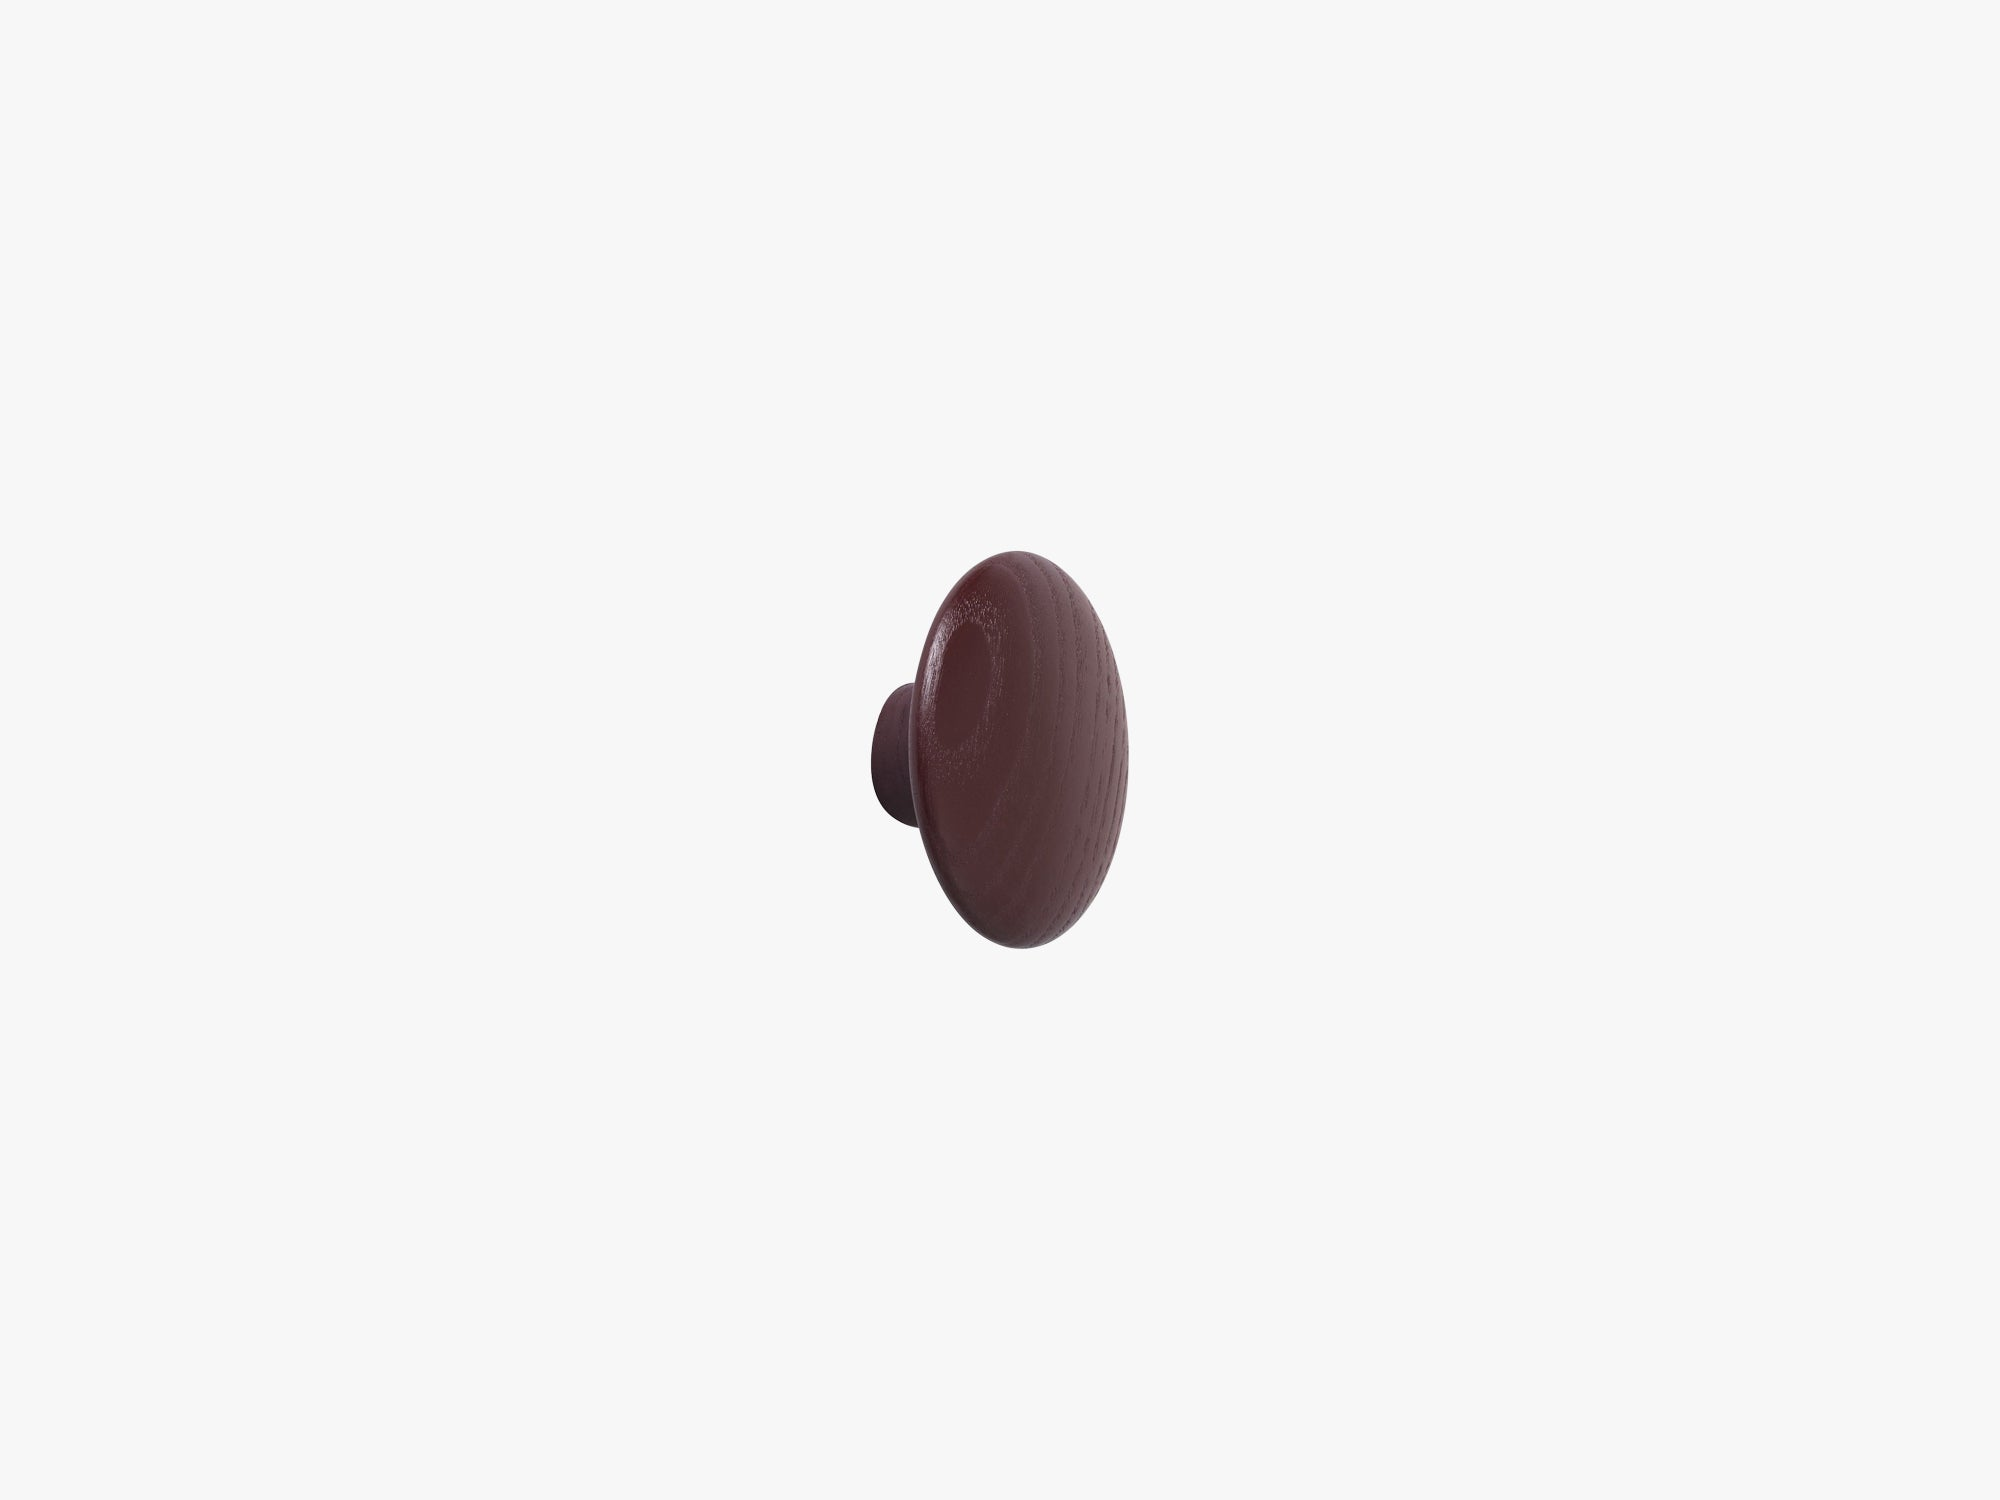 The Dots Coat Hooks / X-Small, Burgundy fra Muuto